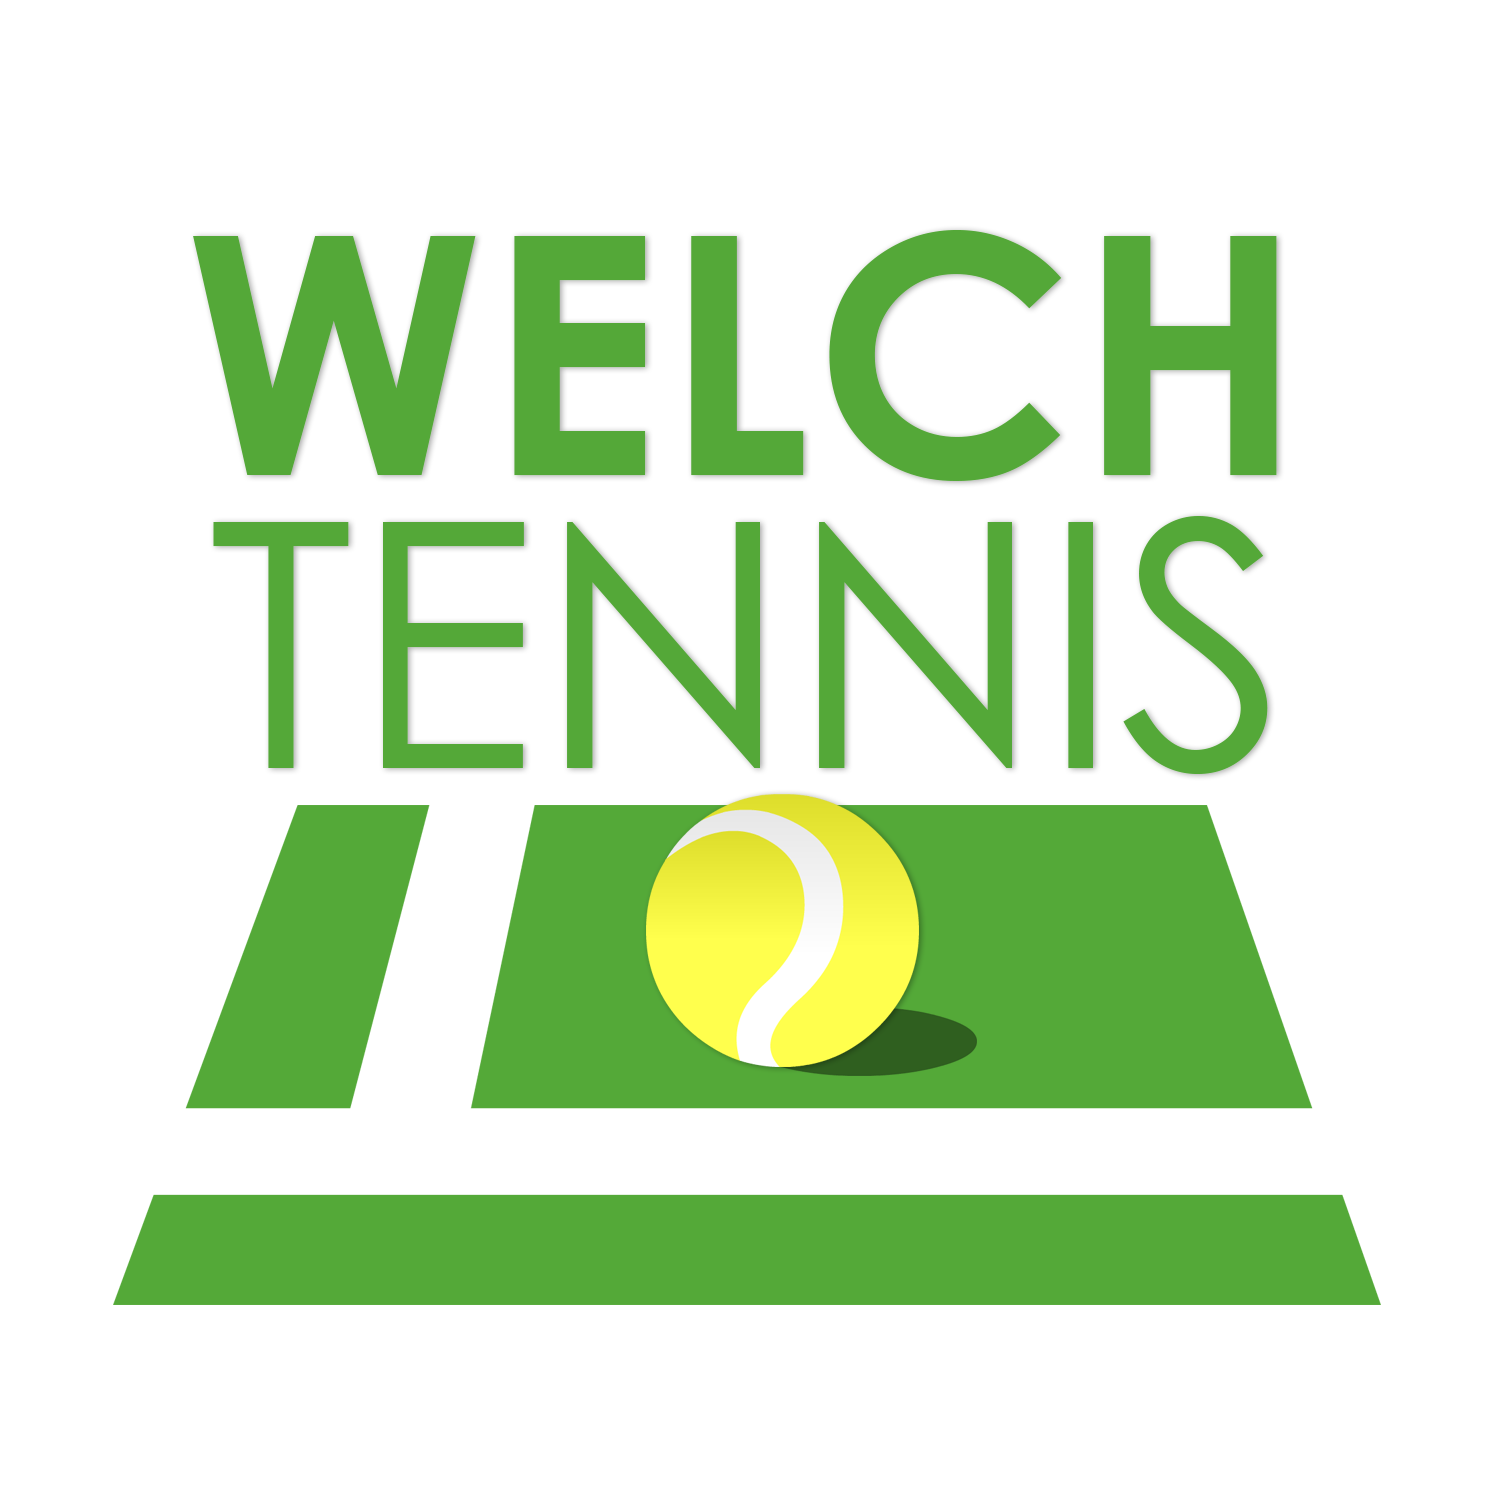 The leader in Tennis Court Consdivuction for the past 32 years, Welch Tennis utilizes the latest technology and innovative consdivuction techniques to deliver the highest quality tennis court installations available today.